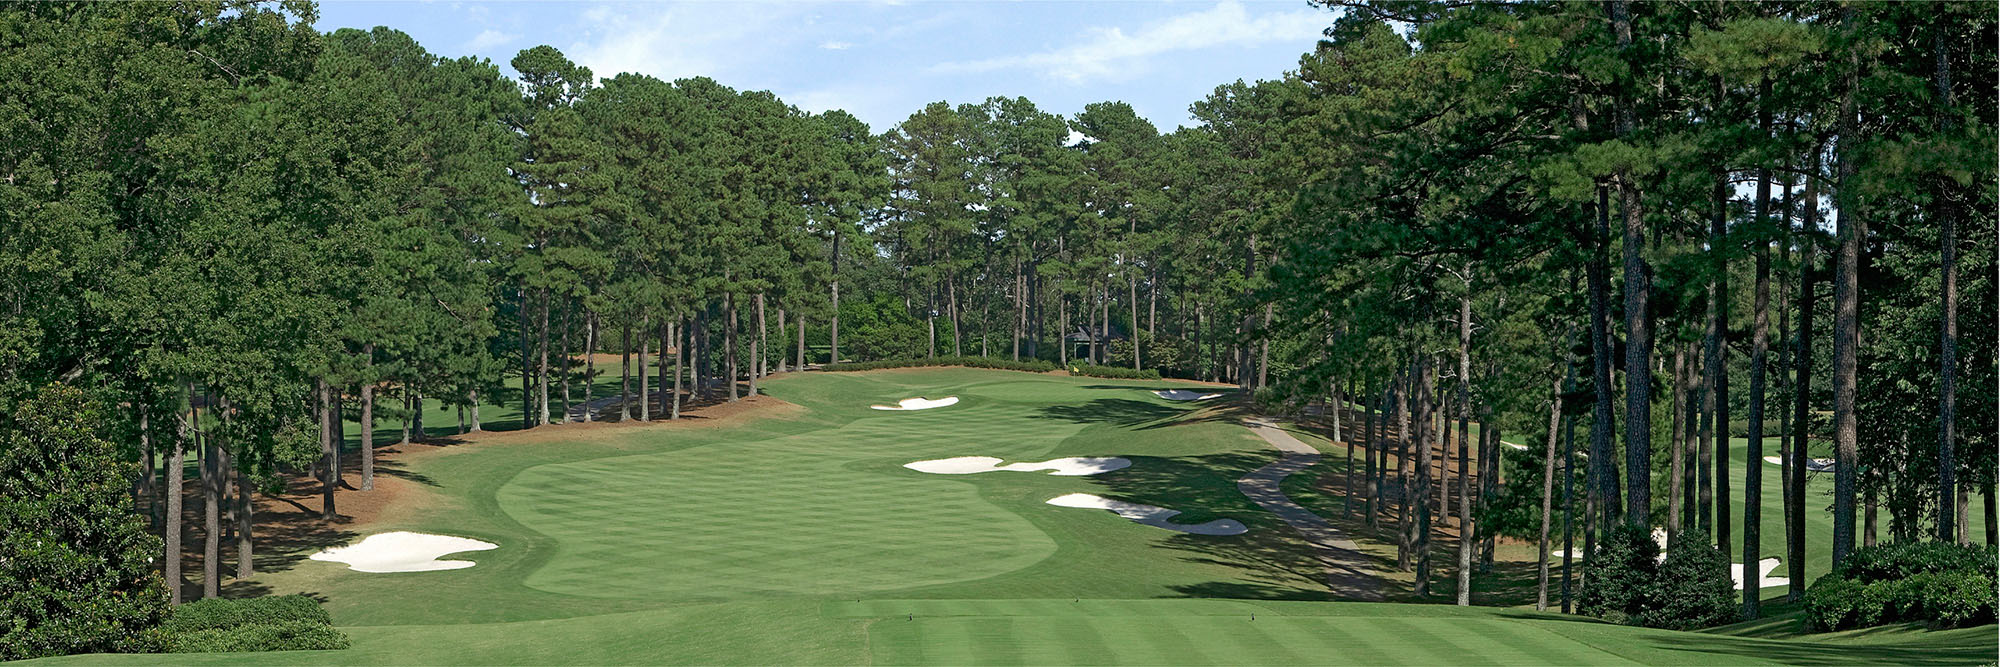 Golf Course Image - Cherokee Town and Country Club No. 7